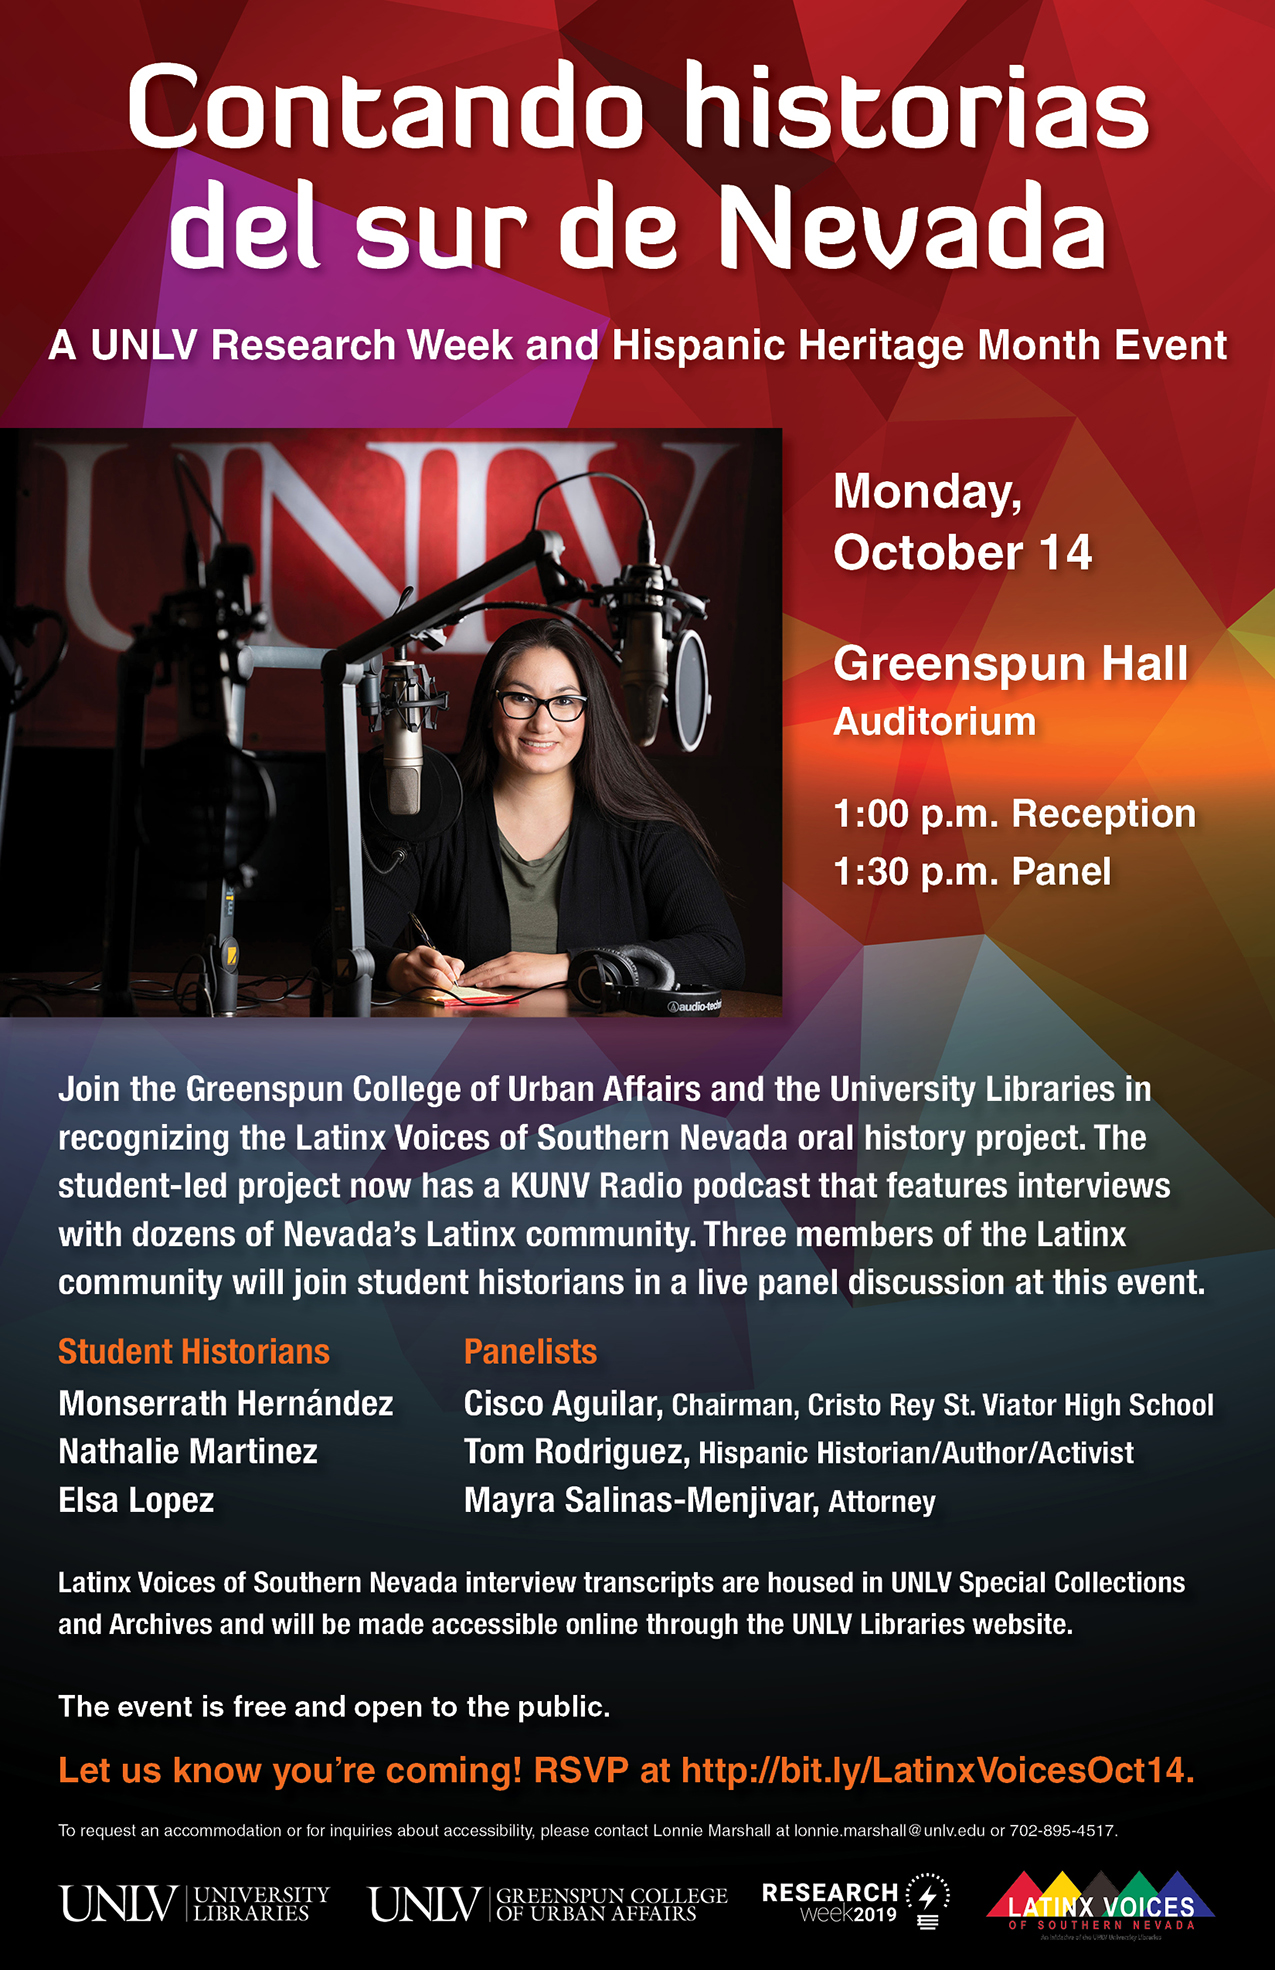 Contando historias del sur de Nevada: A UNLV Research Week and Hispanic Heritage Month Event